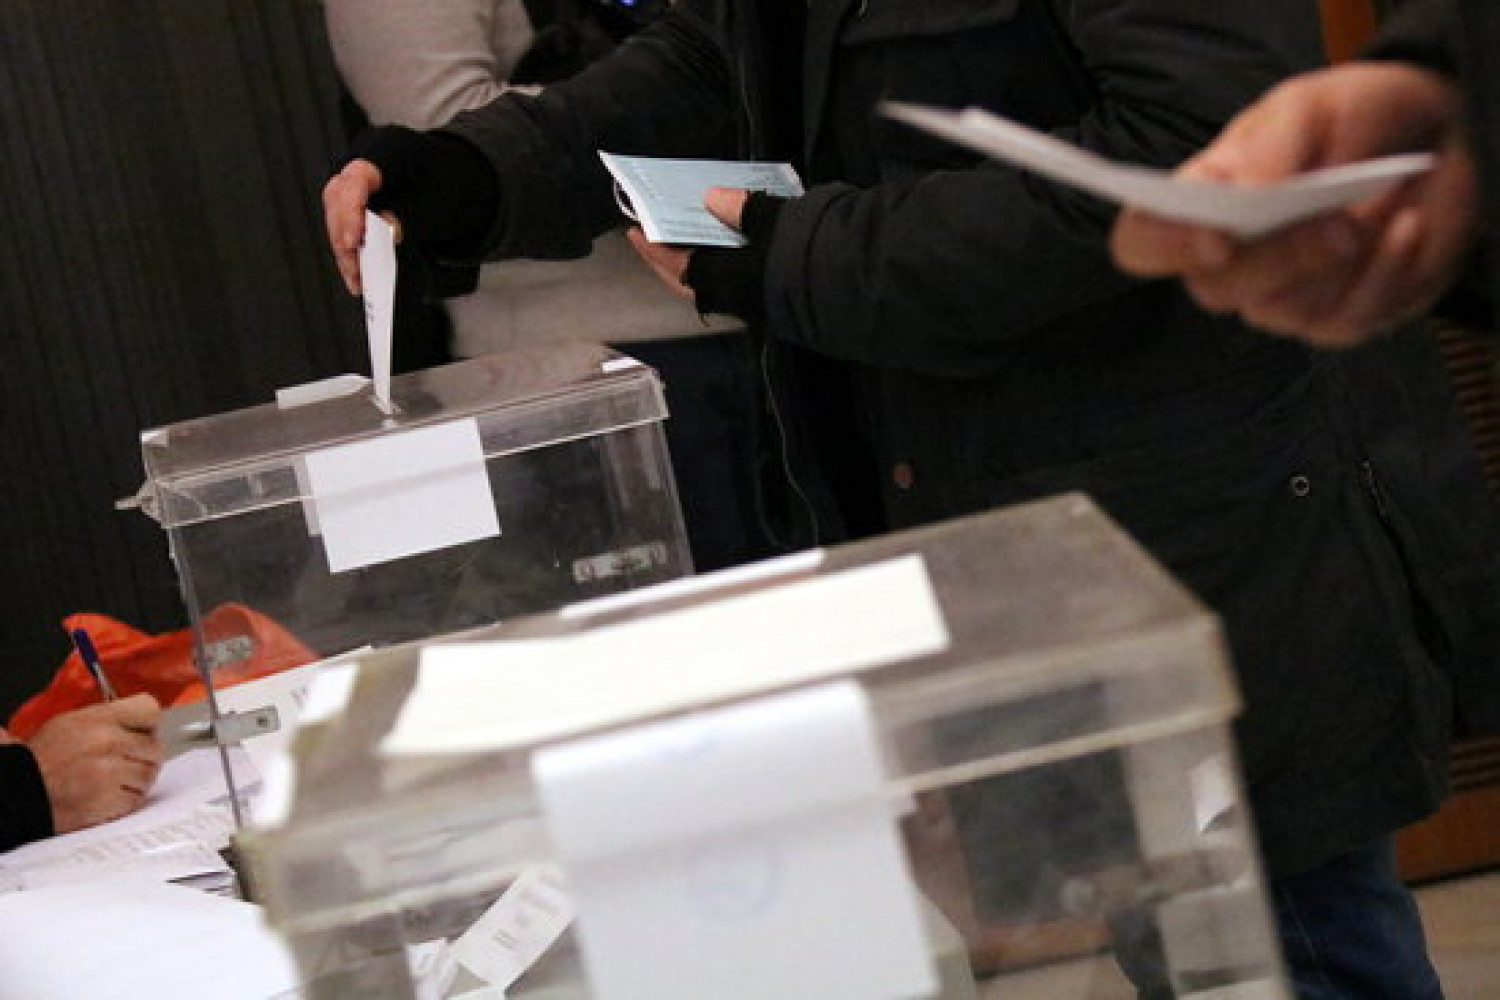 Ballot boxes in Barcelona during the December 21 election (by Núria Julià)